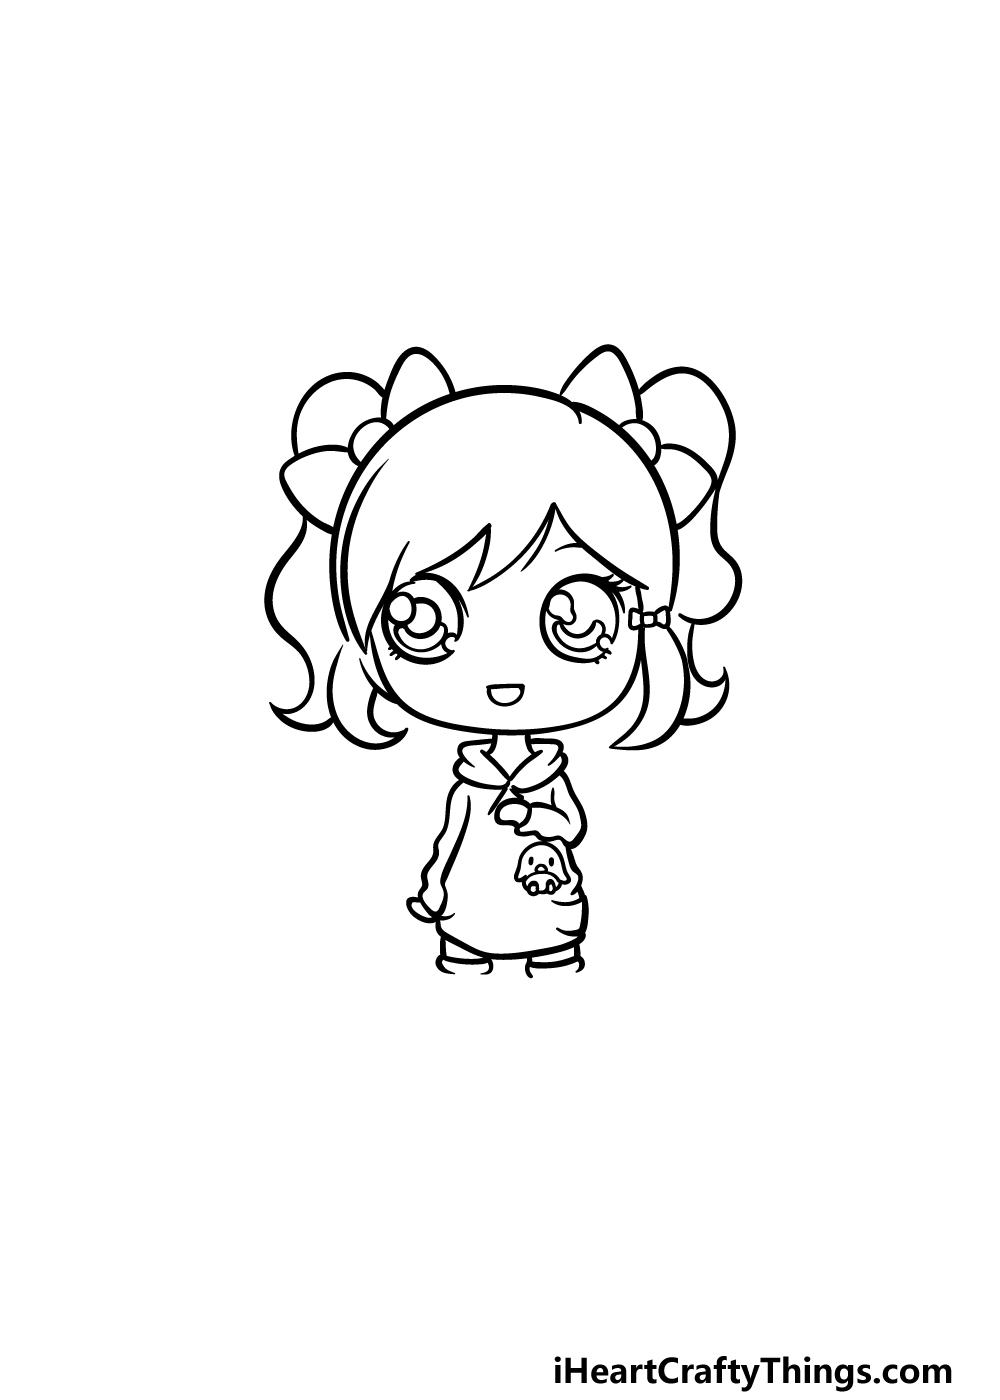 drawing a doll step 4